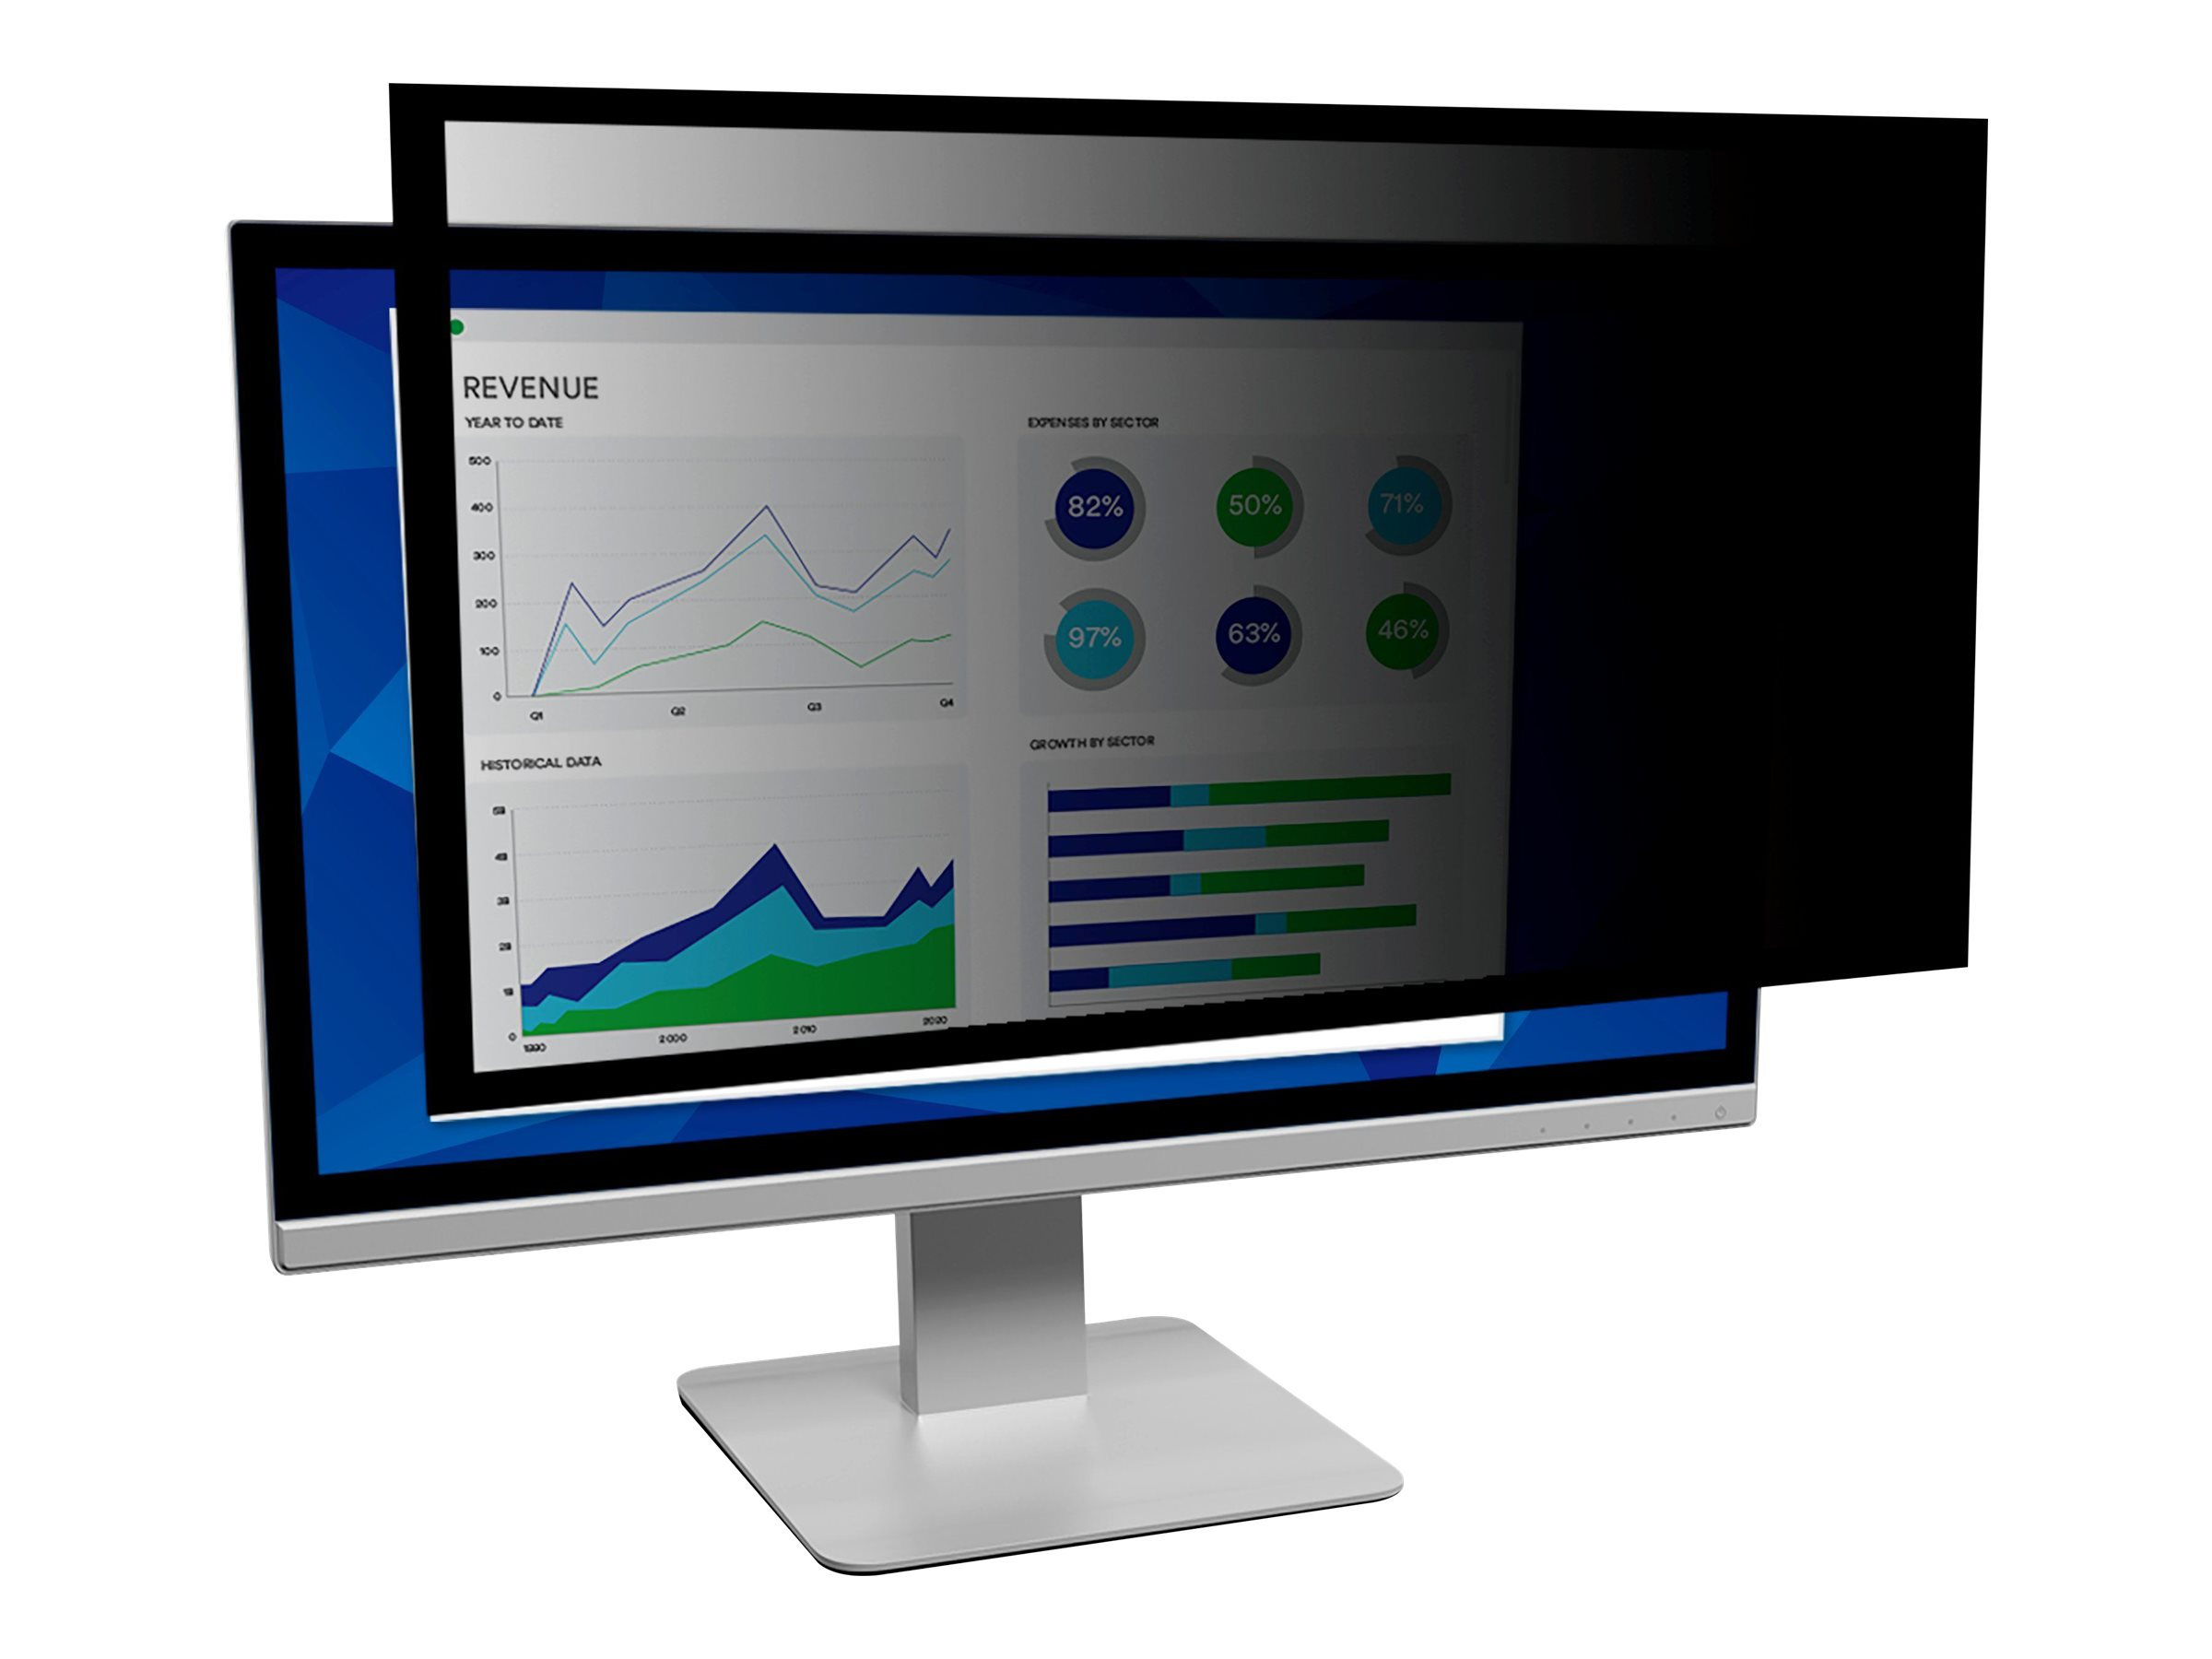 """3M Framed Privacy Filter for 22"""" Widescreen Monitor (16:10) - display privacy filter - 22"""" wide"""